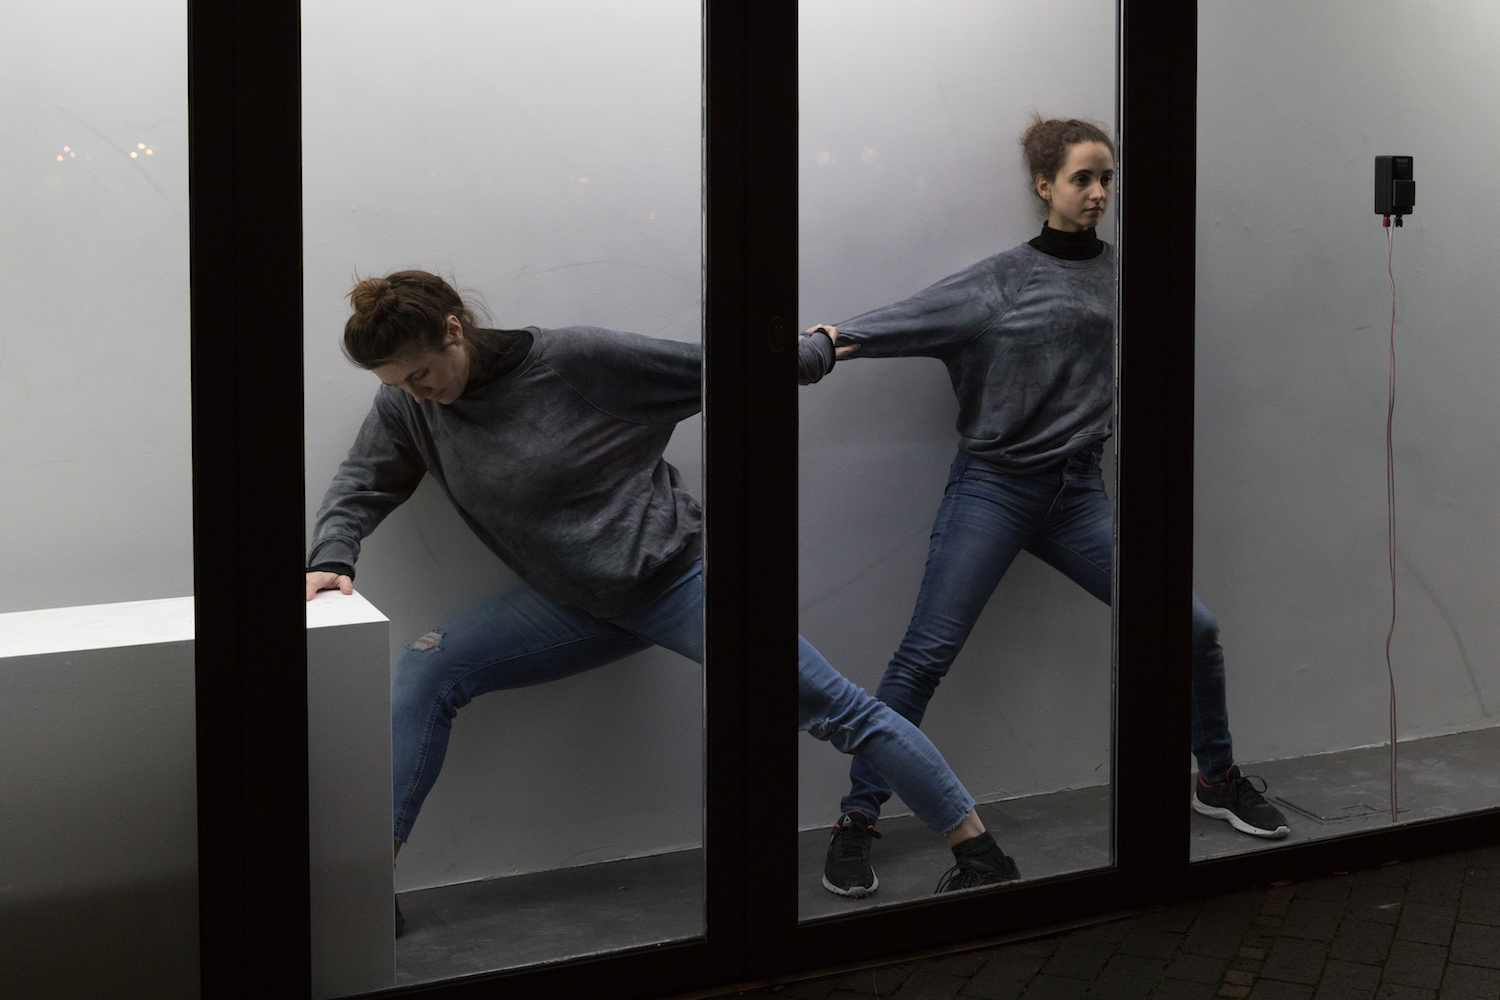 Nicole Bachmann, full stop slightly high, 2020. Performance / Installation view. Performed by Noa Genazzano and Aurore Vigneron. VITRINE, London.